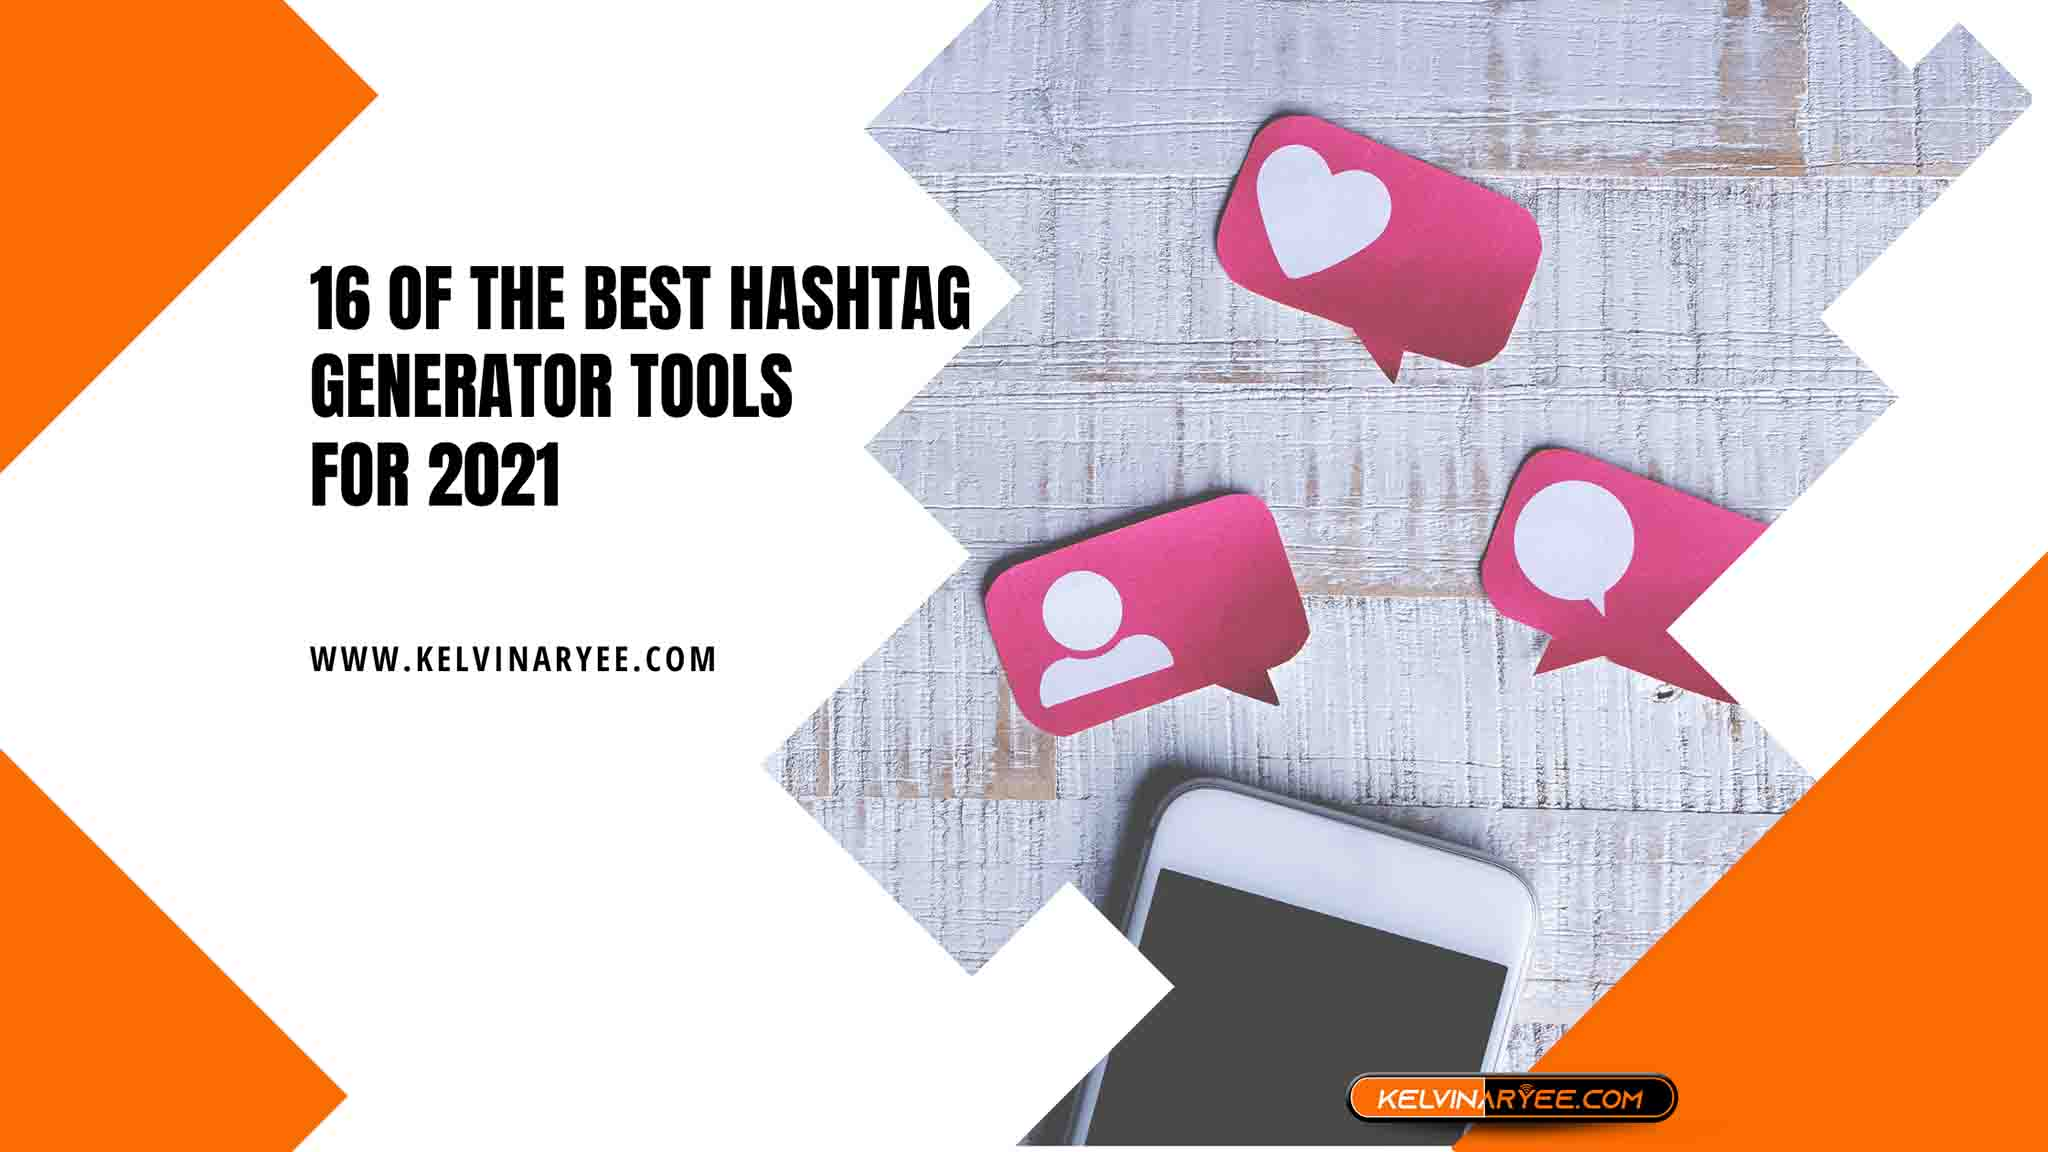 16 of the Best Hashtag Generator Tools for 2021